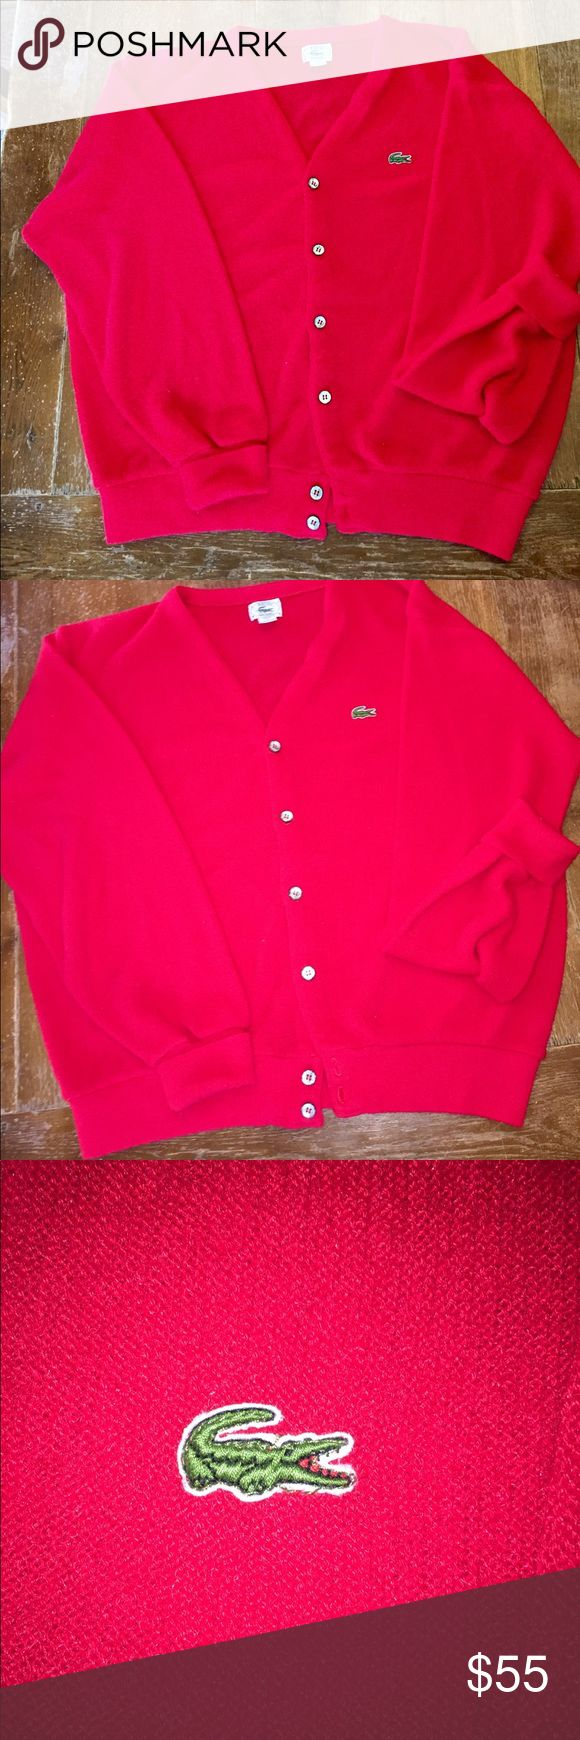 Vintage Lacoste cardigan some piling but real deal In good condition Lacoste Sweaters Cardigans